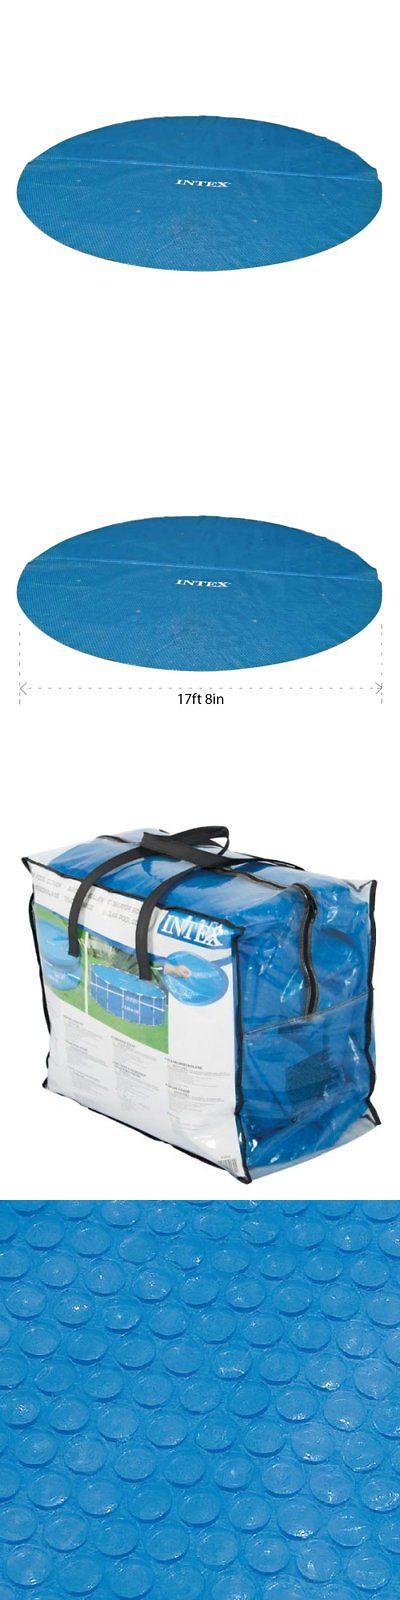 Pool Covers and Rollers 181068: Intex Solar Cover For 18Ft Diameter Easy Set And Frame Pools -> BUY IT NOW ONLY: $44.6 on eBay!